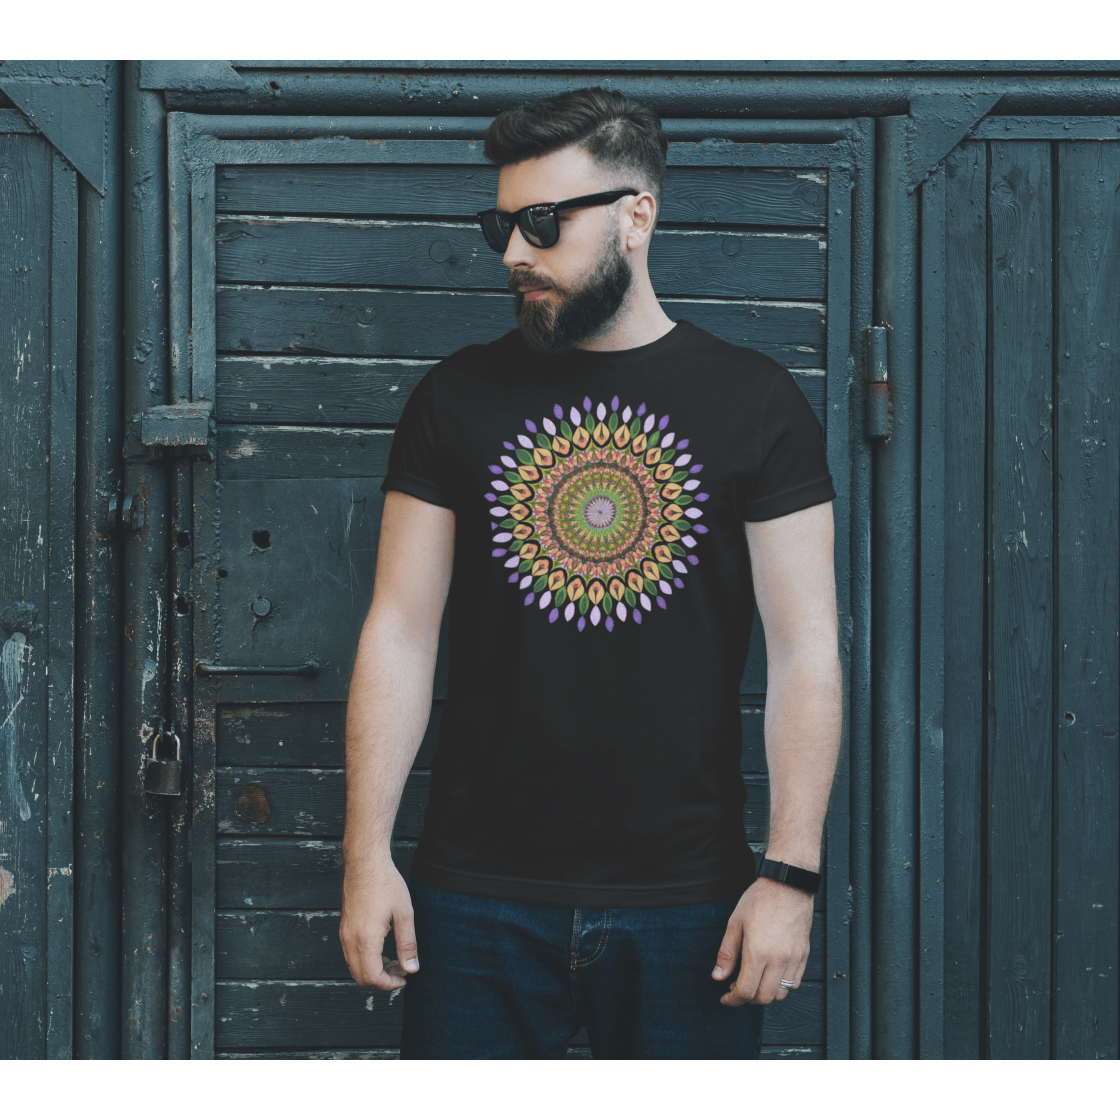 Men in mandala t-shirt